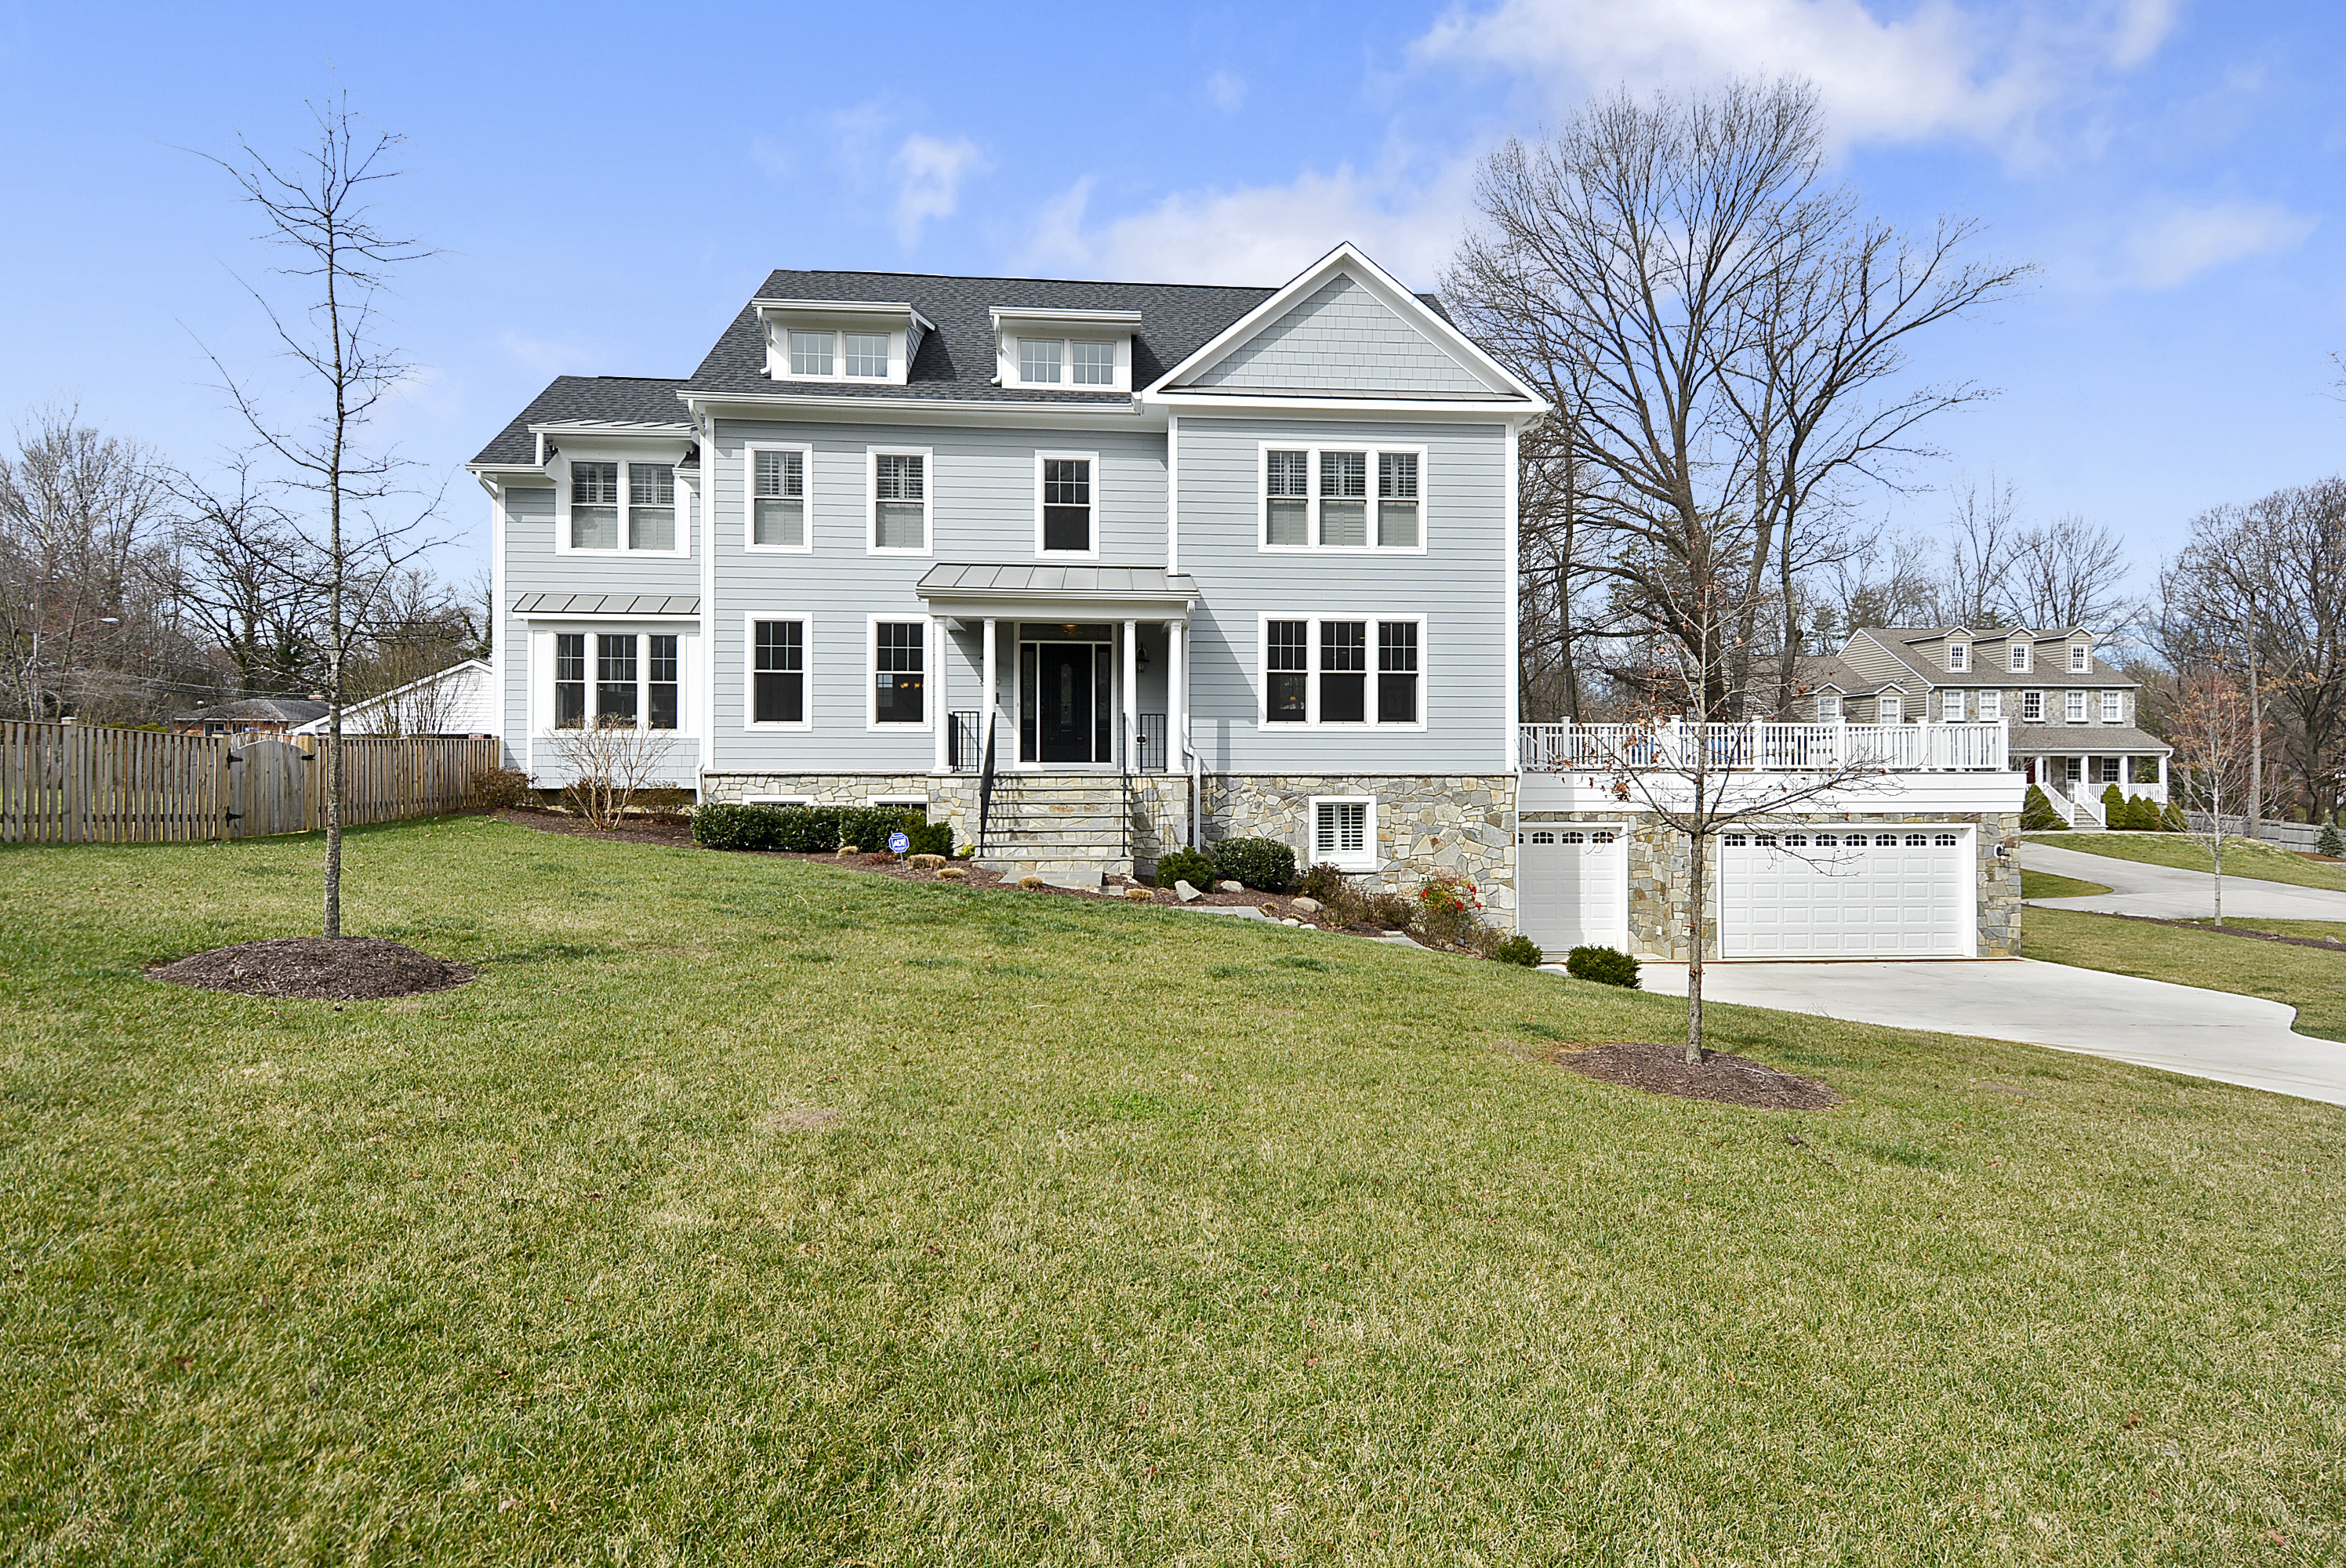 JUST LISTED IN ALEXANDRIA: 8140 STACEY RD